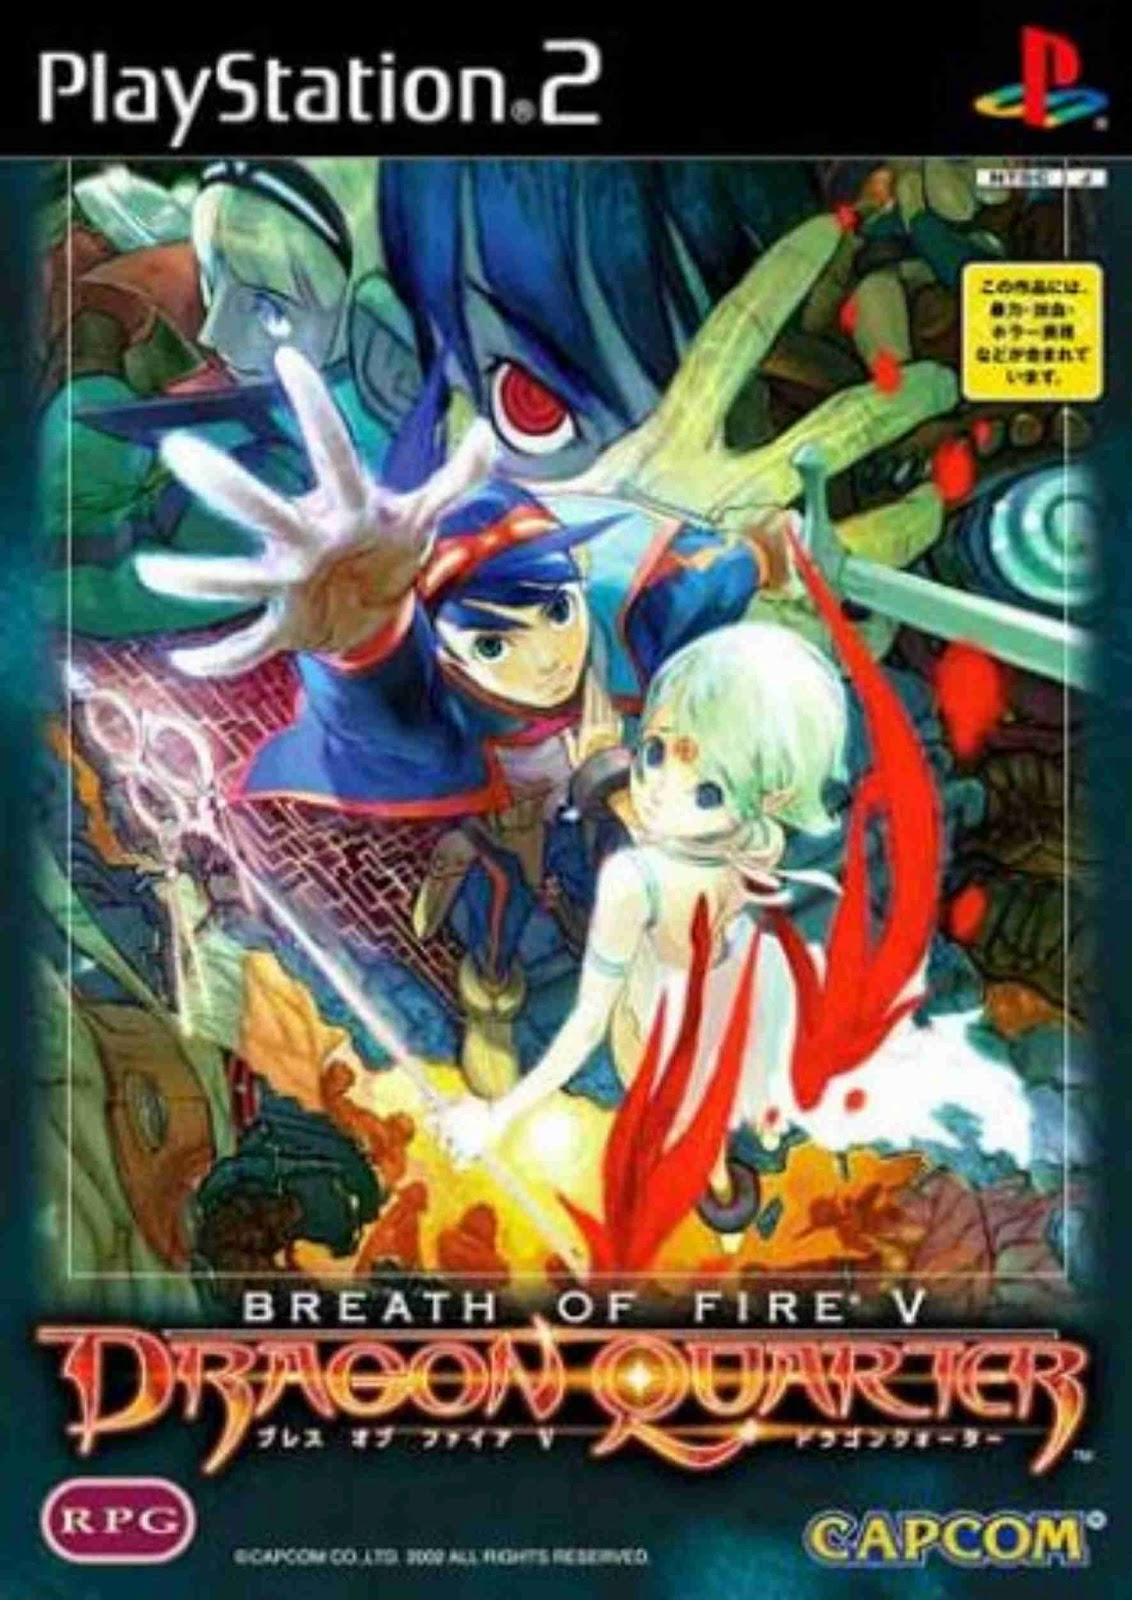 All Computer And Technology: Download Game Ps2 Breath of Fire